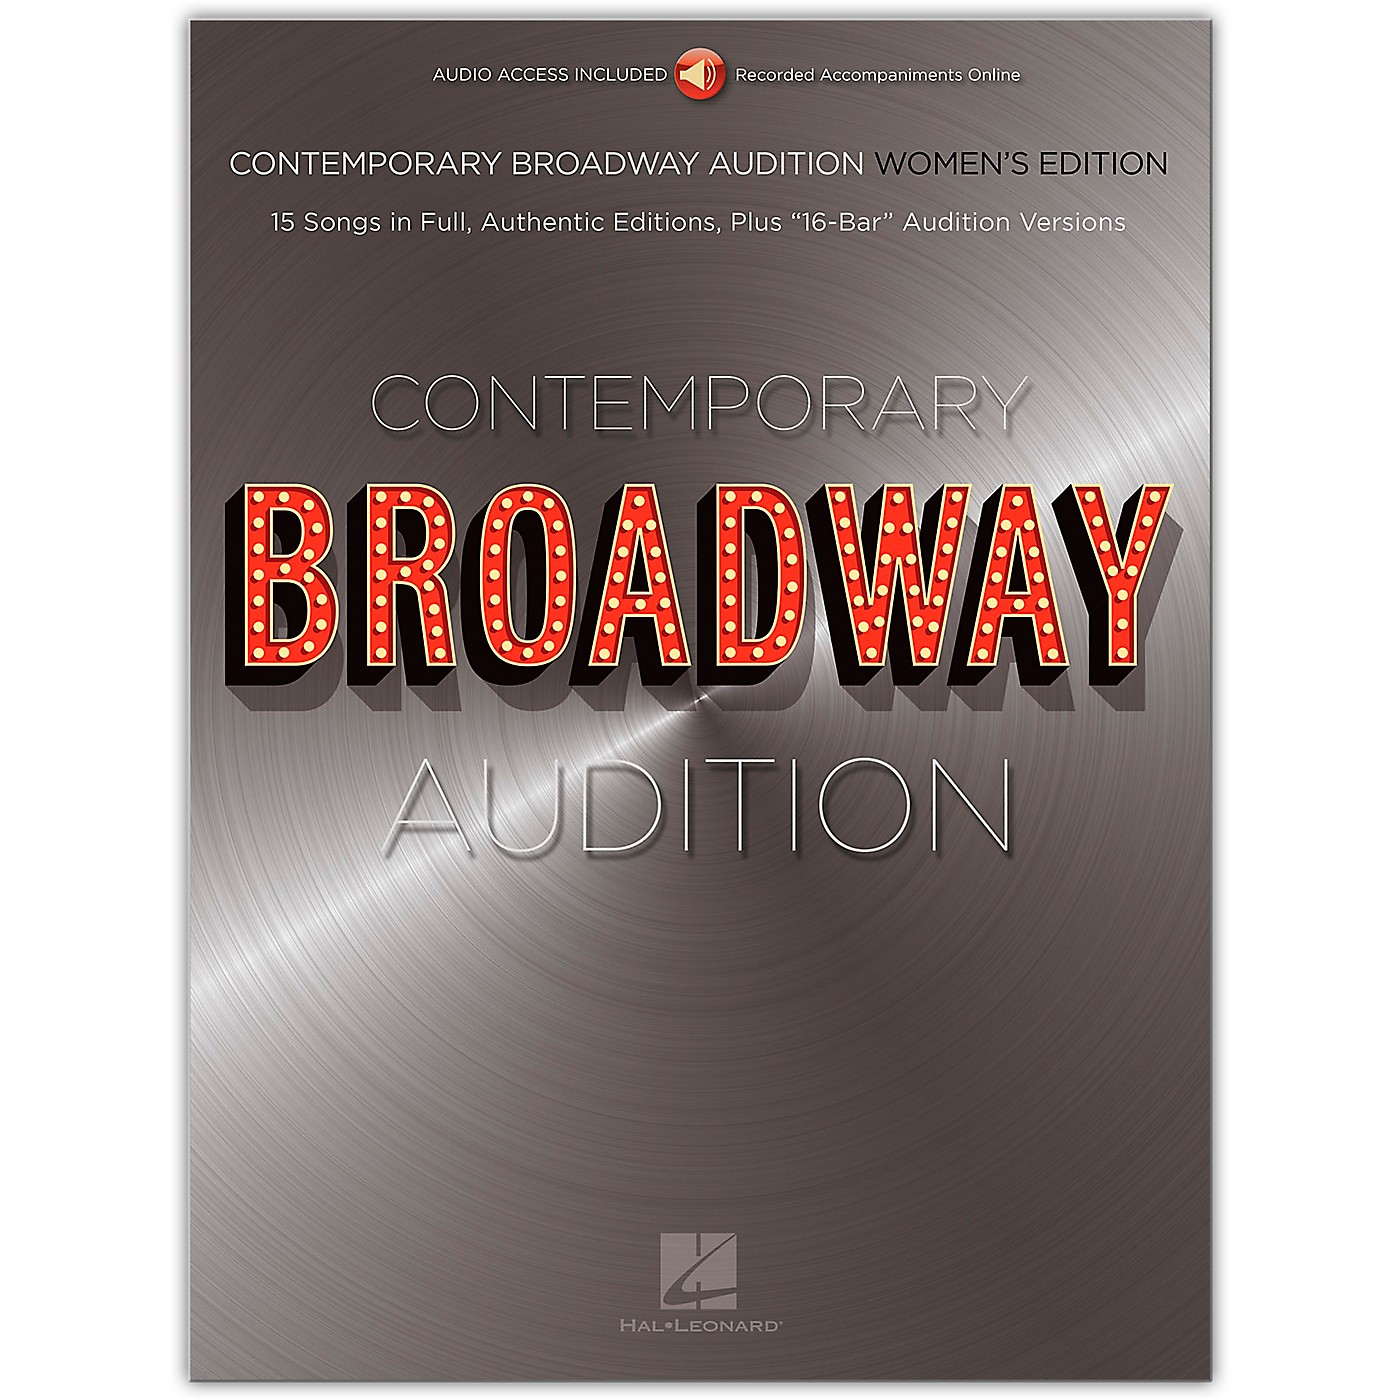 Hal Leonard Contemporary Broadway Audition: Women's Edition - Book/Online Audio  Full Song + 16-Bar Version thumbnail